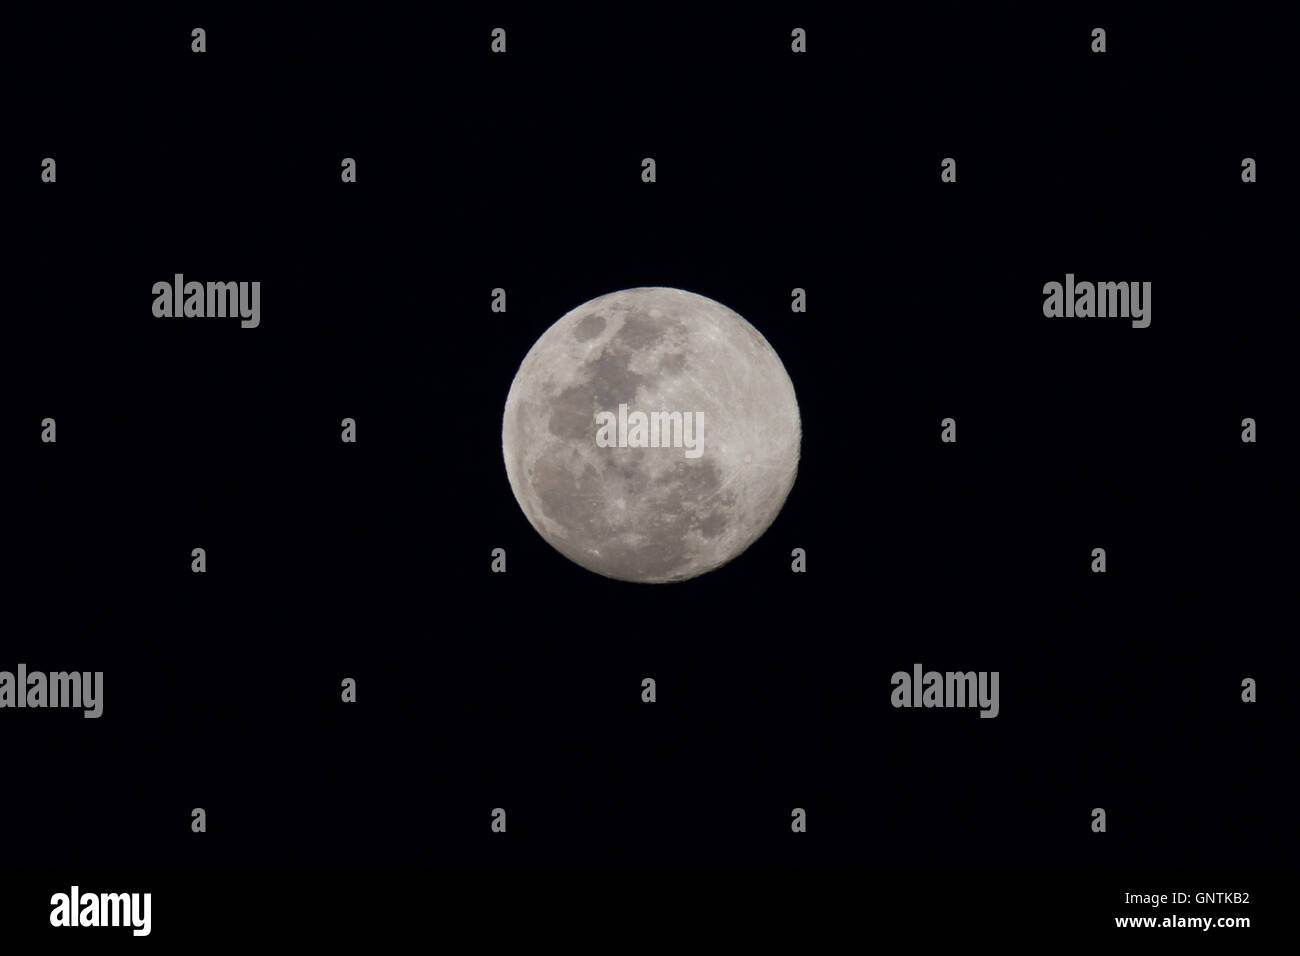 Full moon from southern hemisphere. - Stock Image